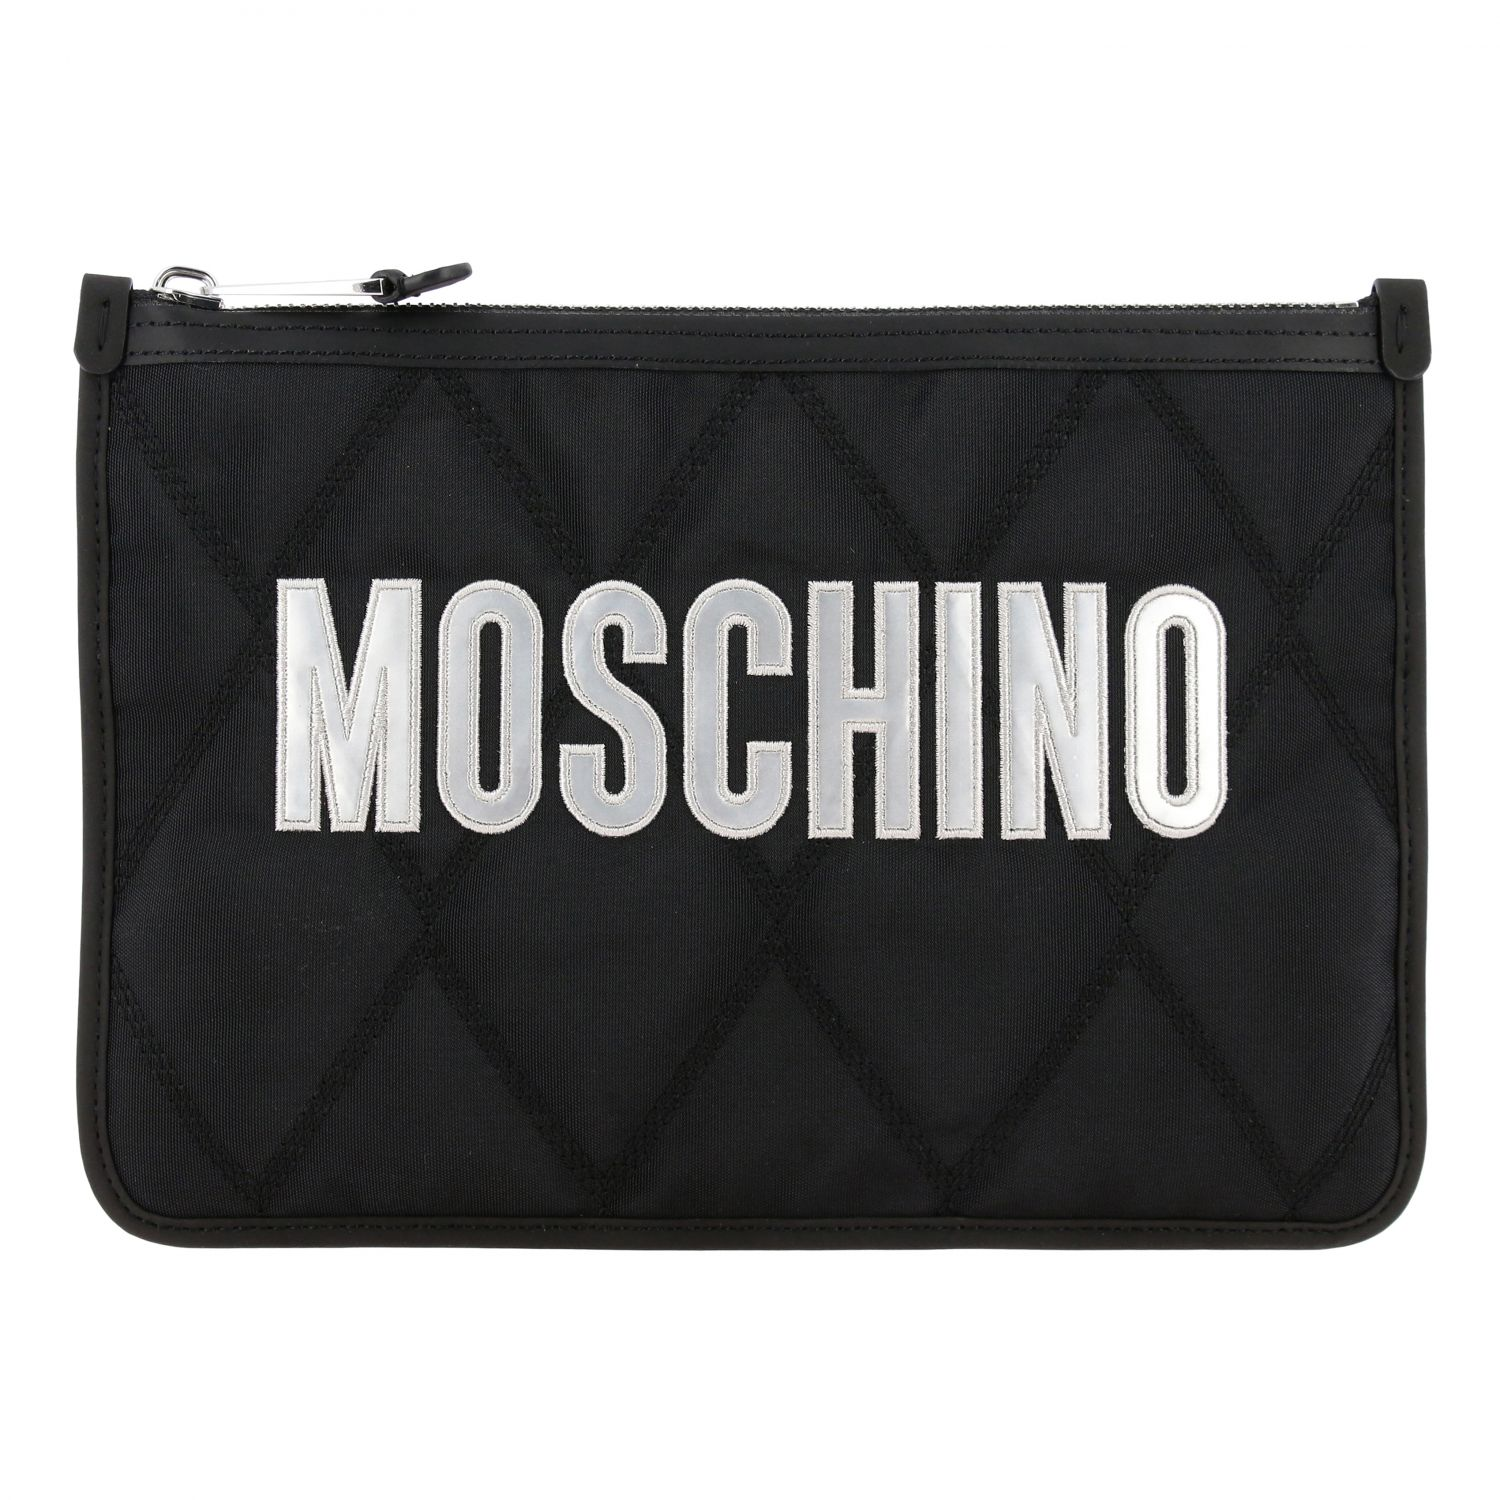 Moschino Couture nylon clutch with laminated logo black 1